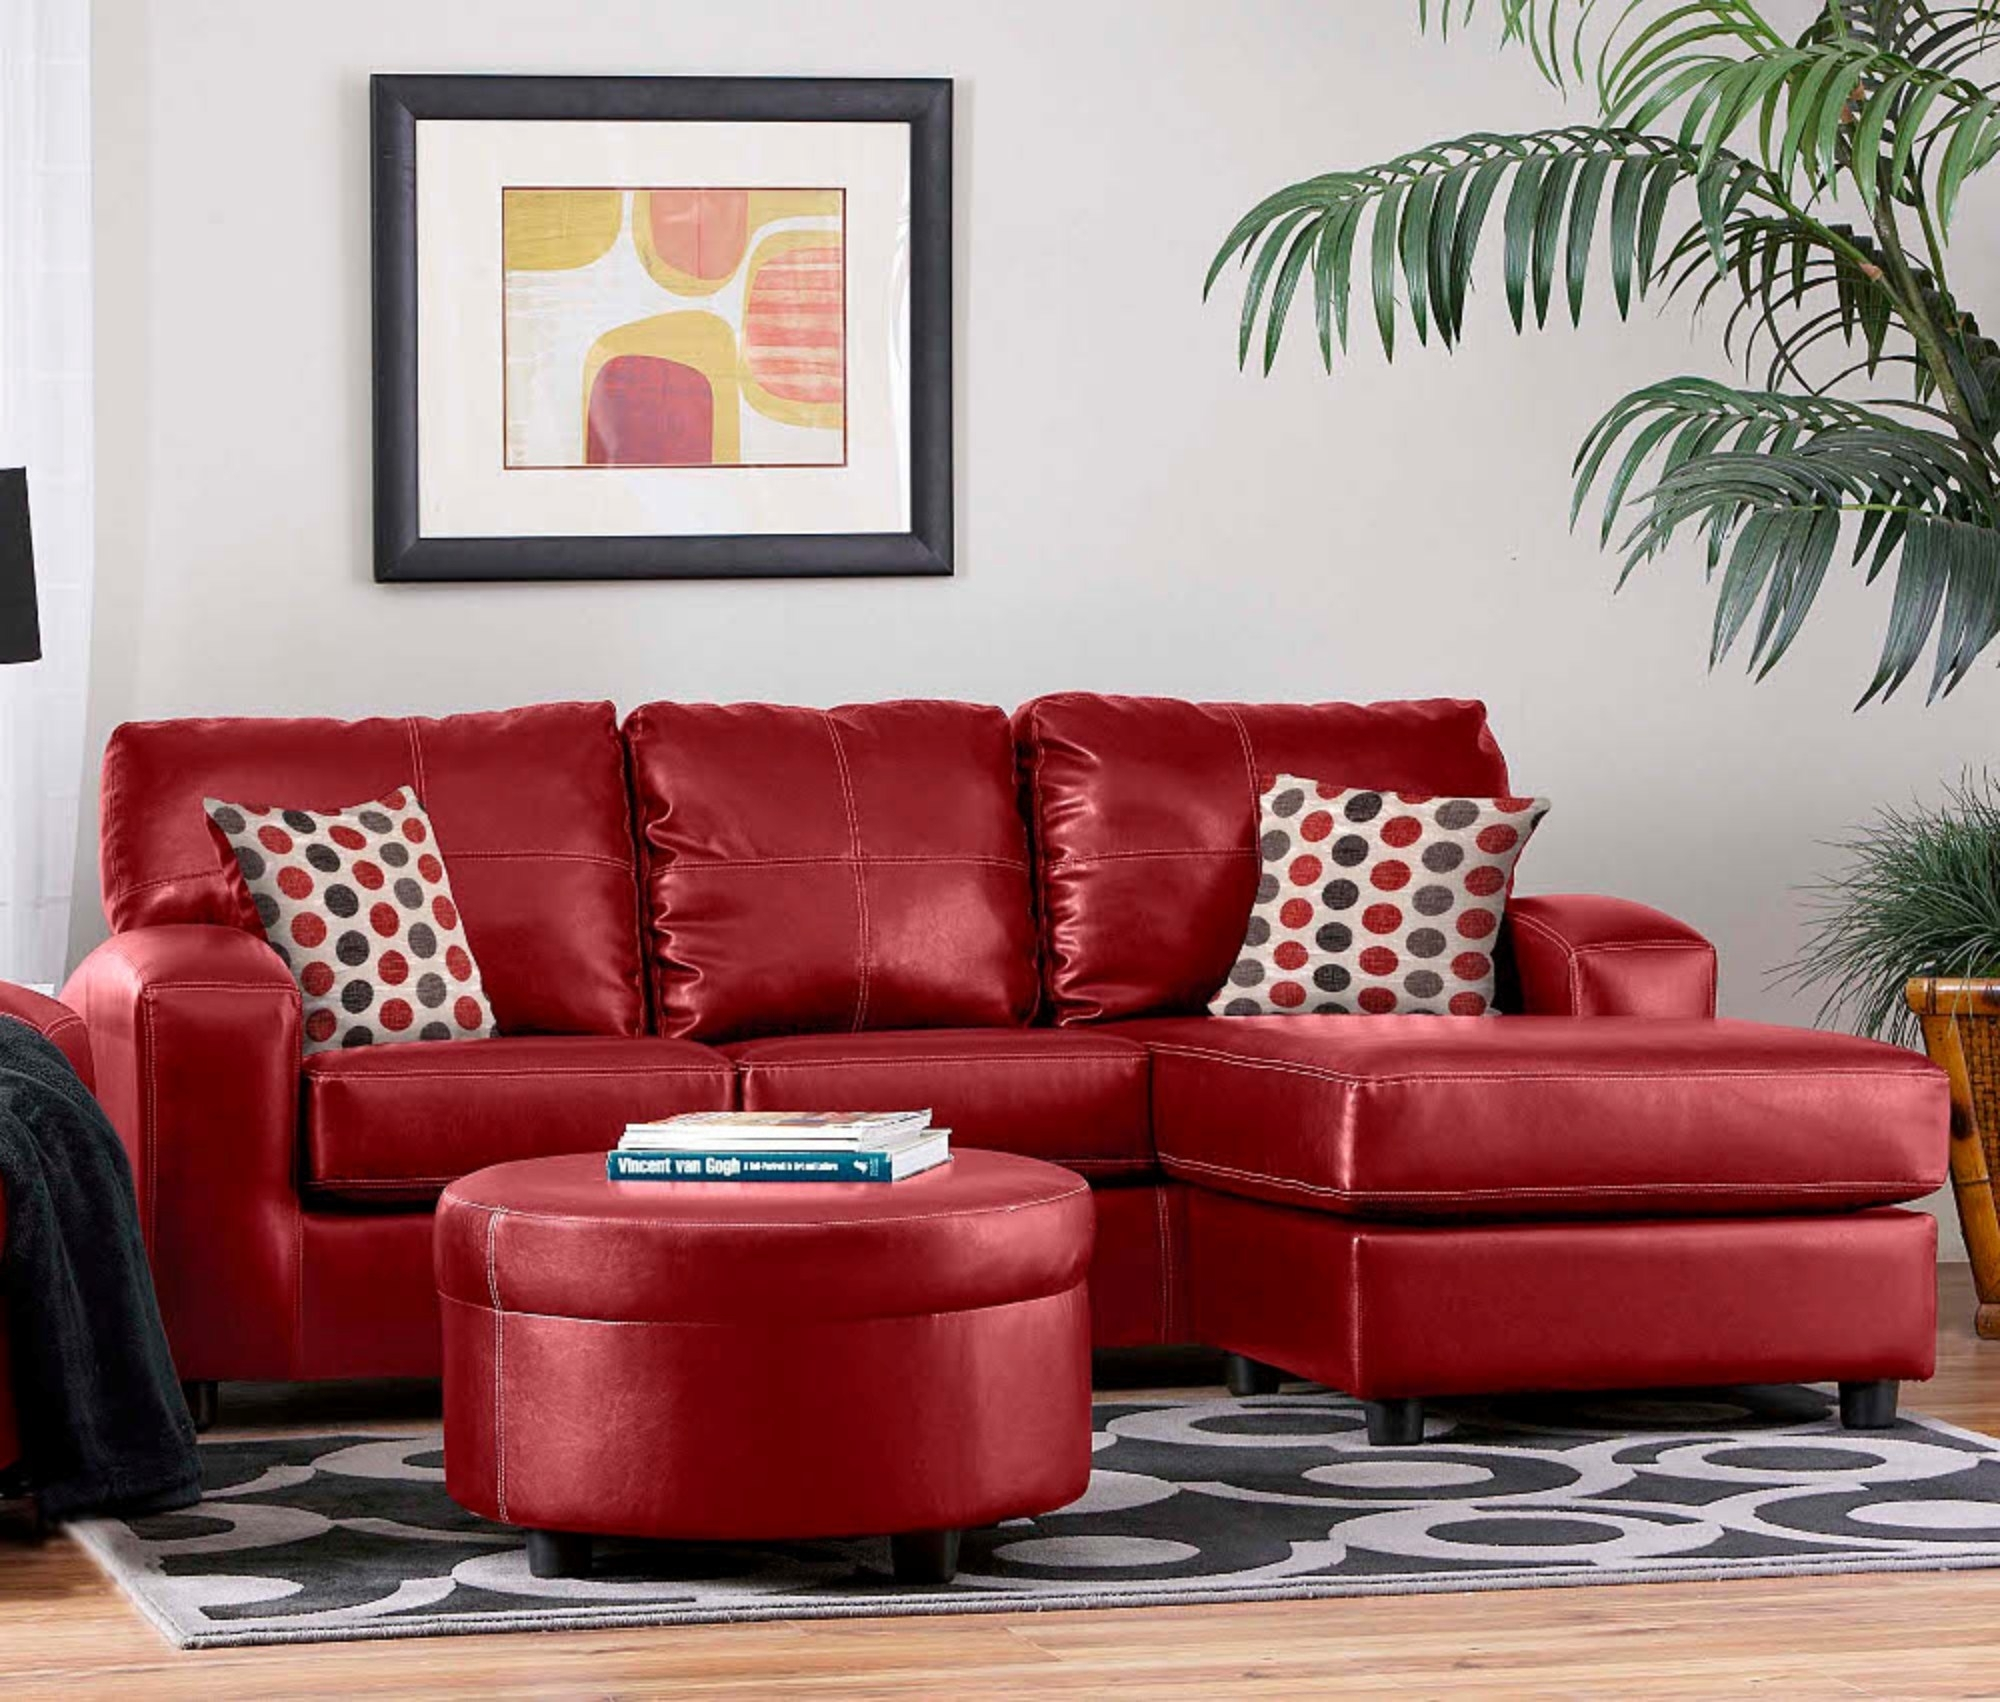 Grey Living Room Red Couch Imanada Leather Sectional Sofa With Pertaining To Red Leather Sectional Sofas With Ottoman (View 10 of 10)